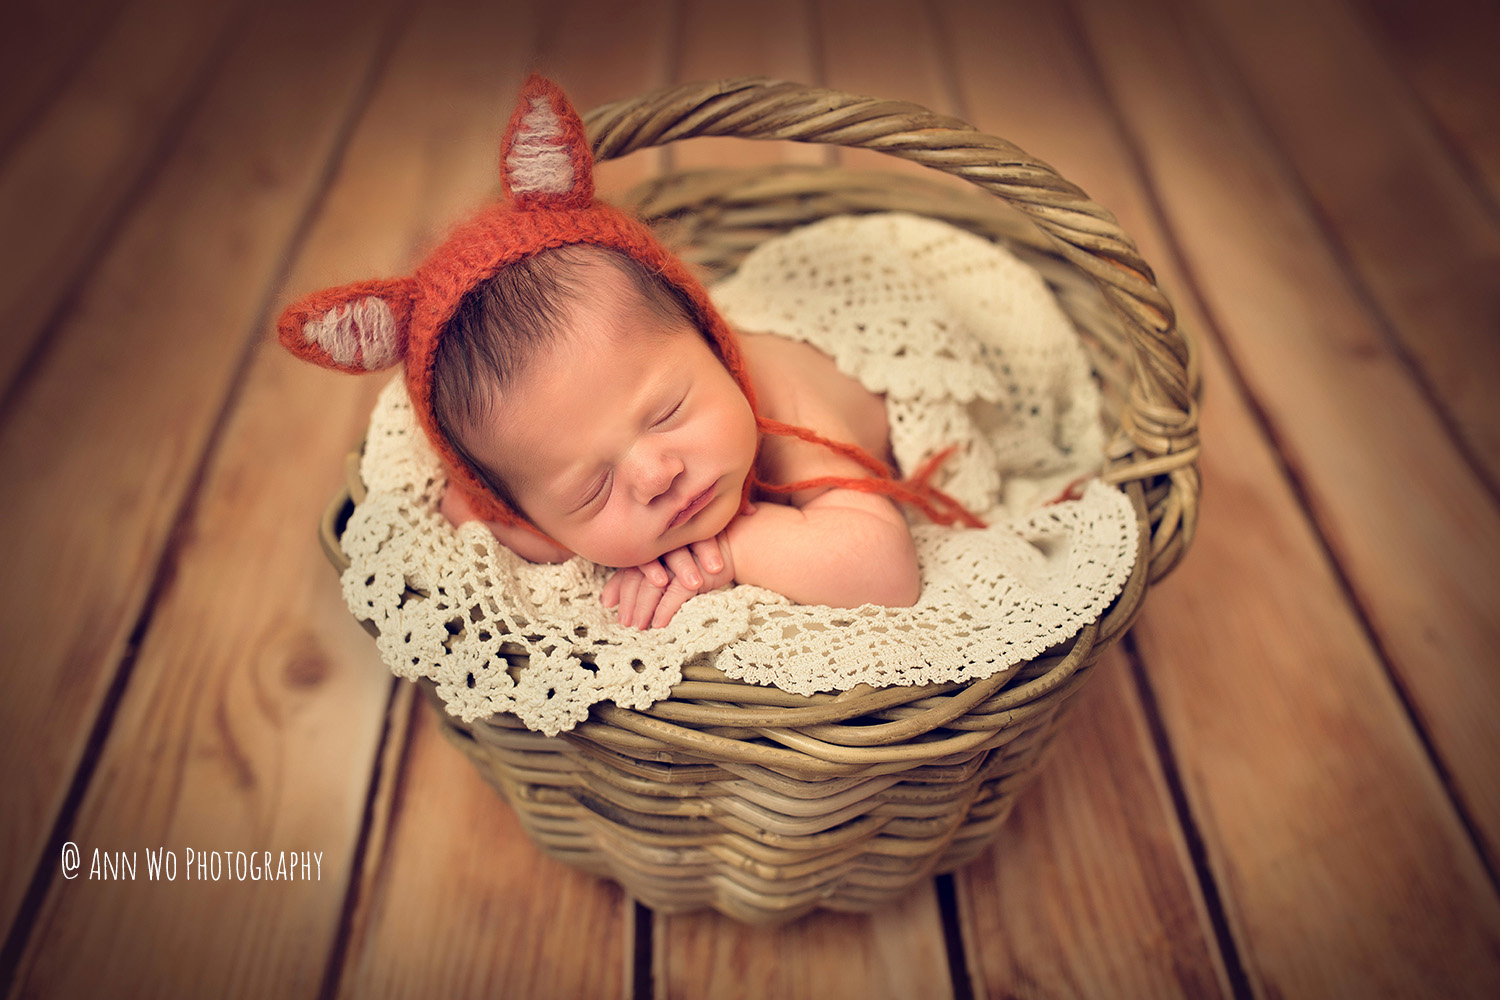 ann wo photographer newborn baby in the basket wearing fox hat and vintage lace